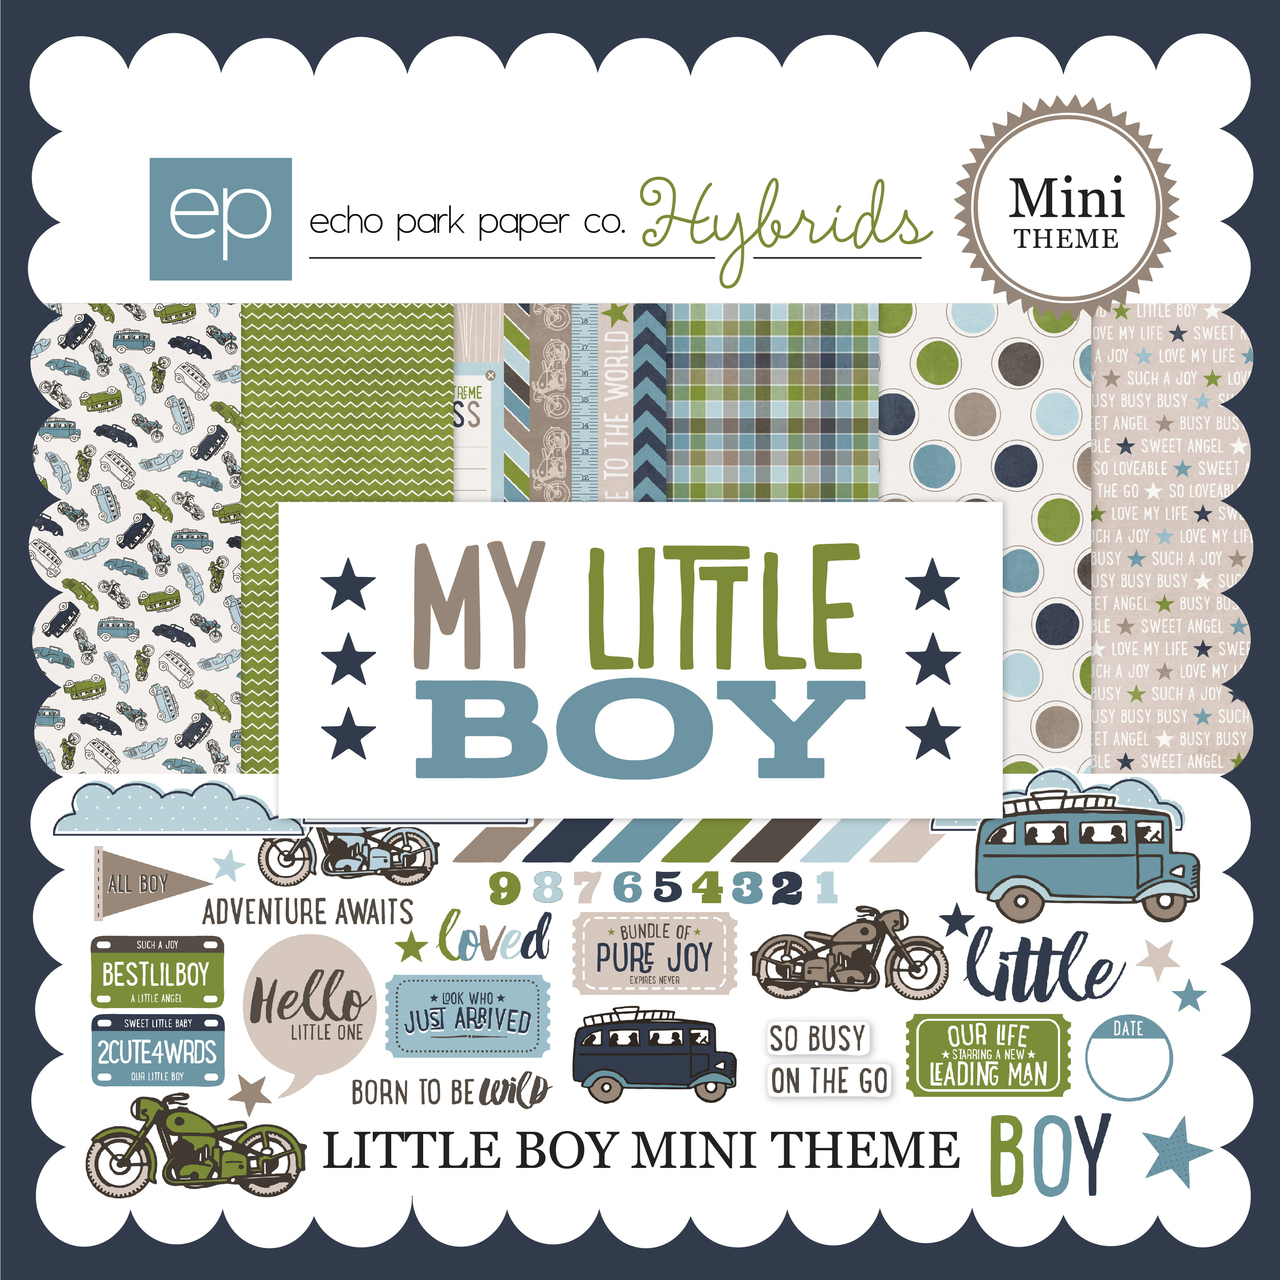 Little Boy Mini-Theme